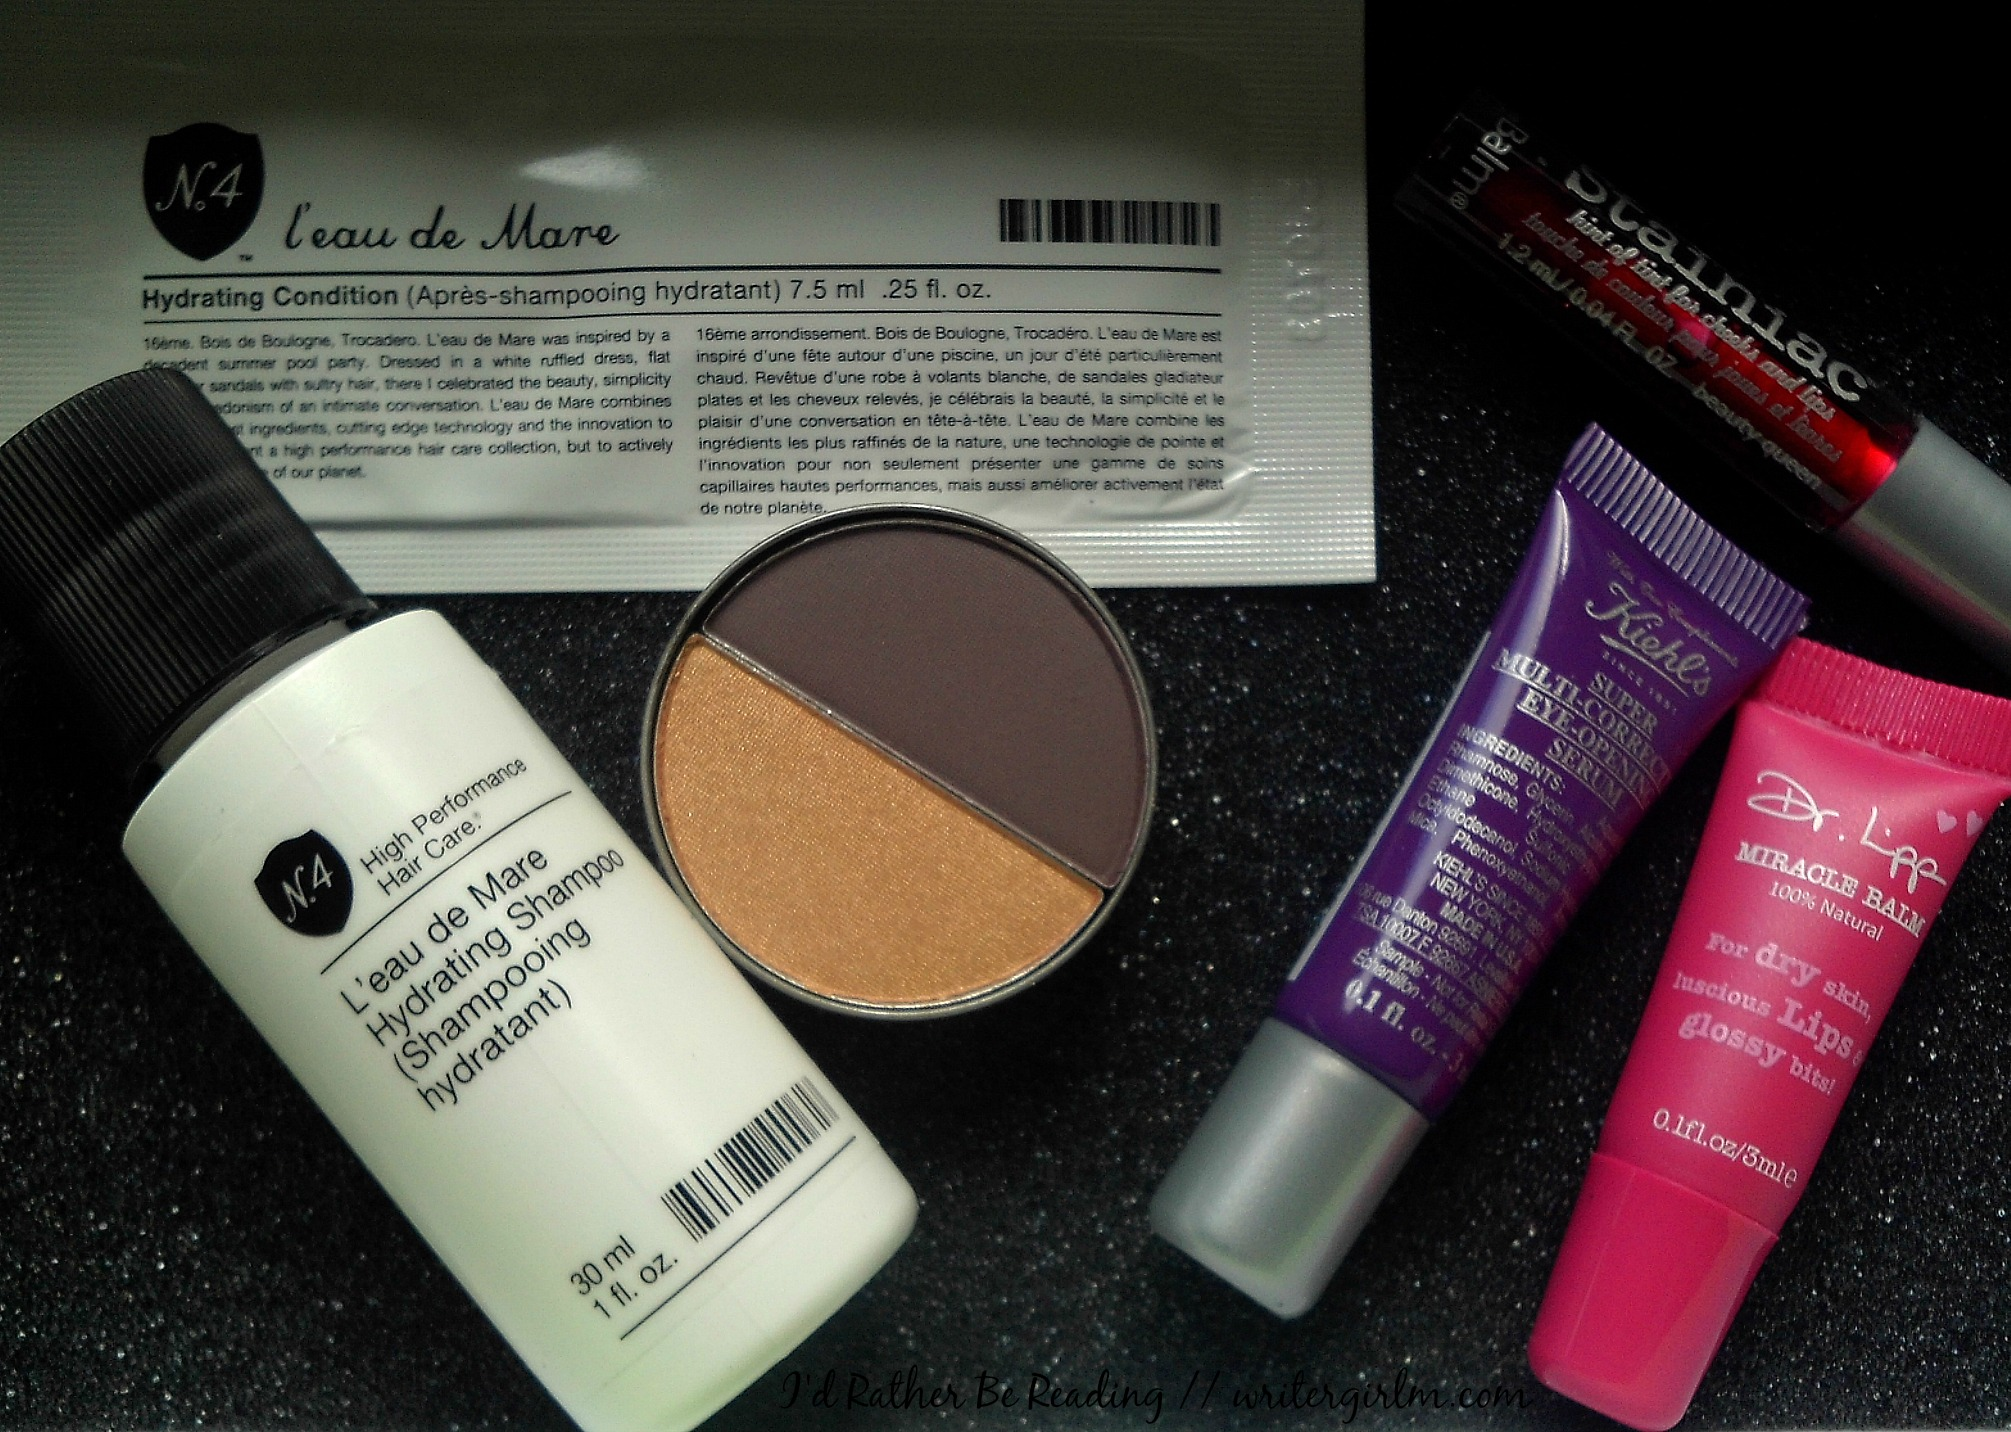 See what goodies I got in my March 2016 Birchbox!